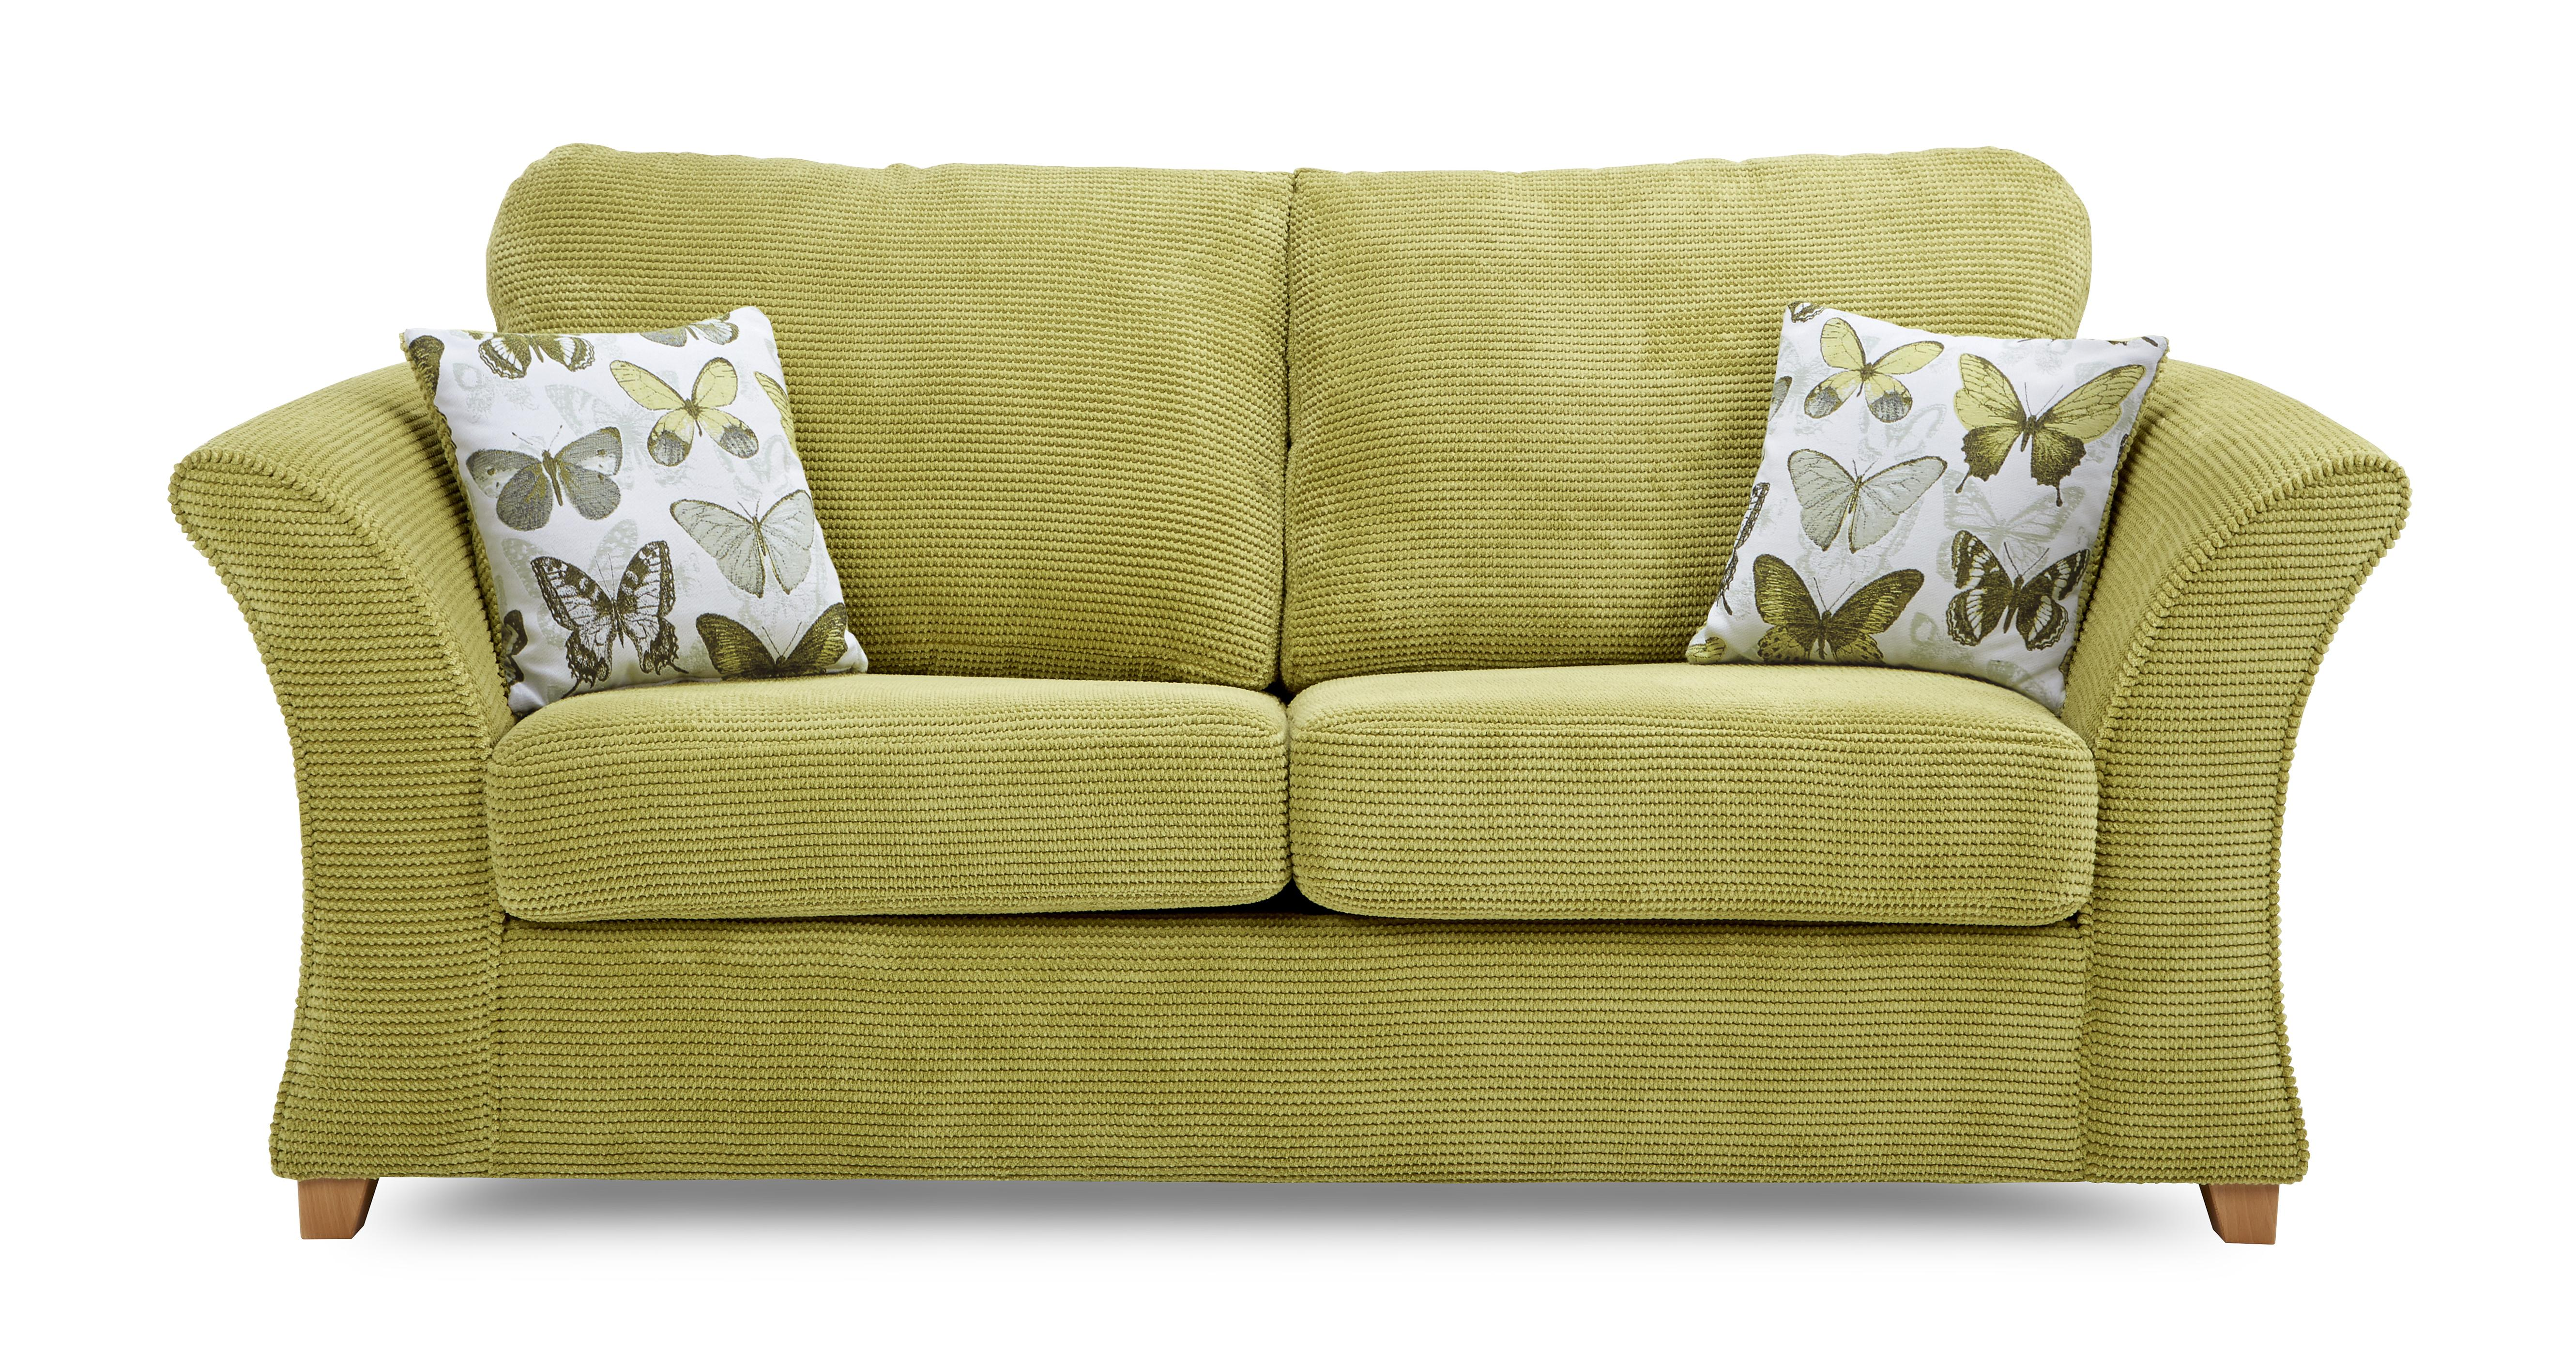 Lelani Clearance 2 Seater Formal Back Deluxe Sofa Bed